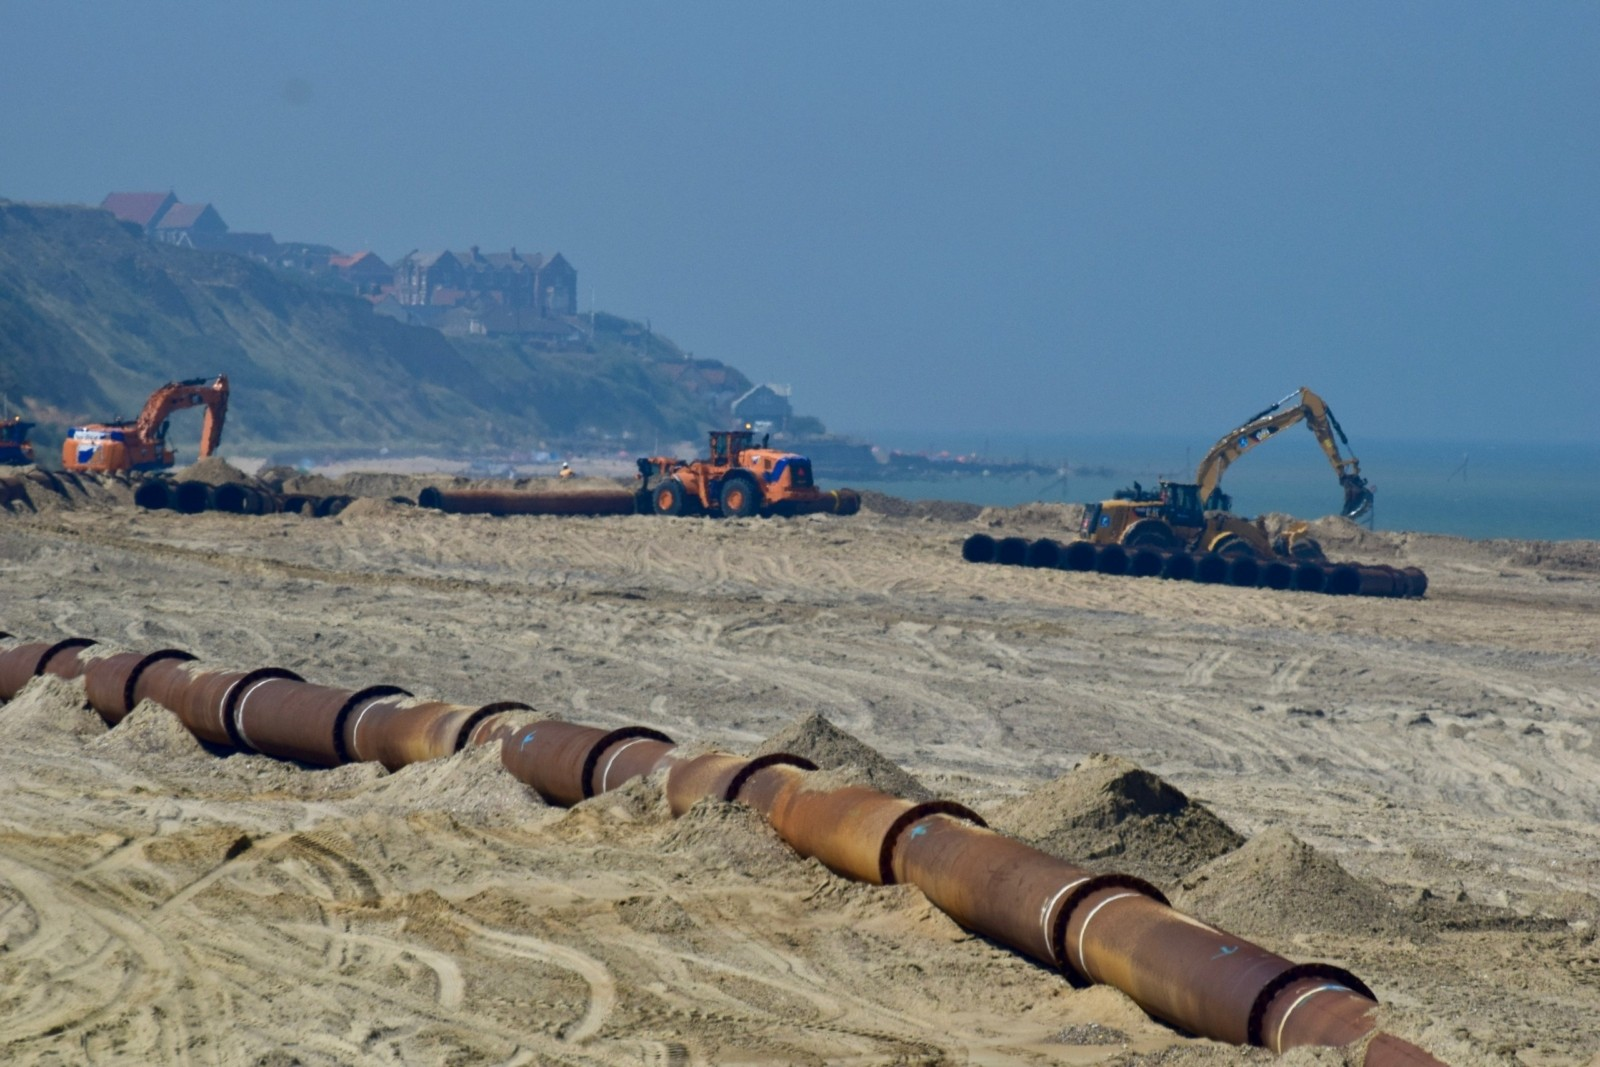 Sediment pumped onto the beach is moved by heavy machinery